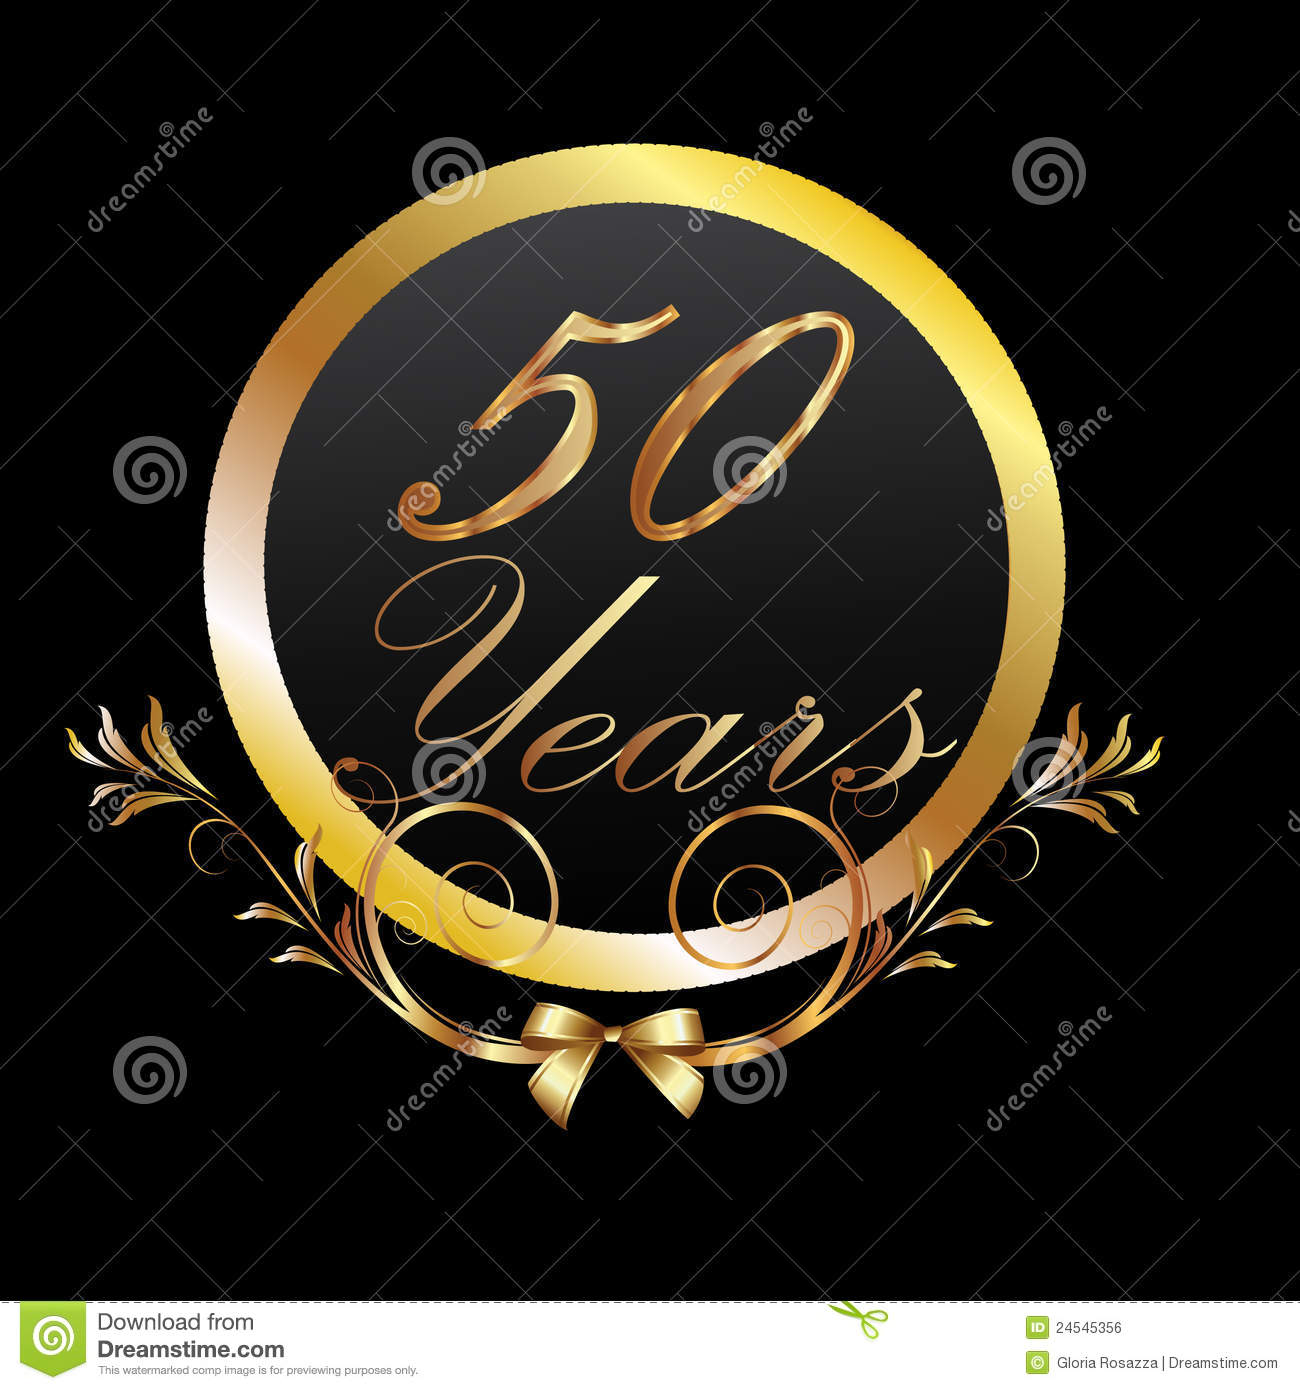 50 Years Gold Royalty Free Stock Image   Image  24545356